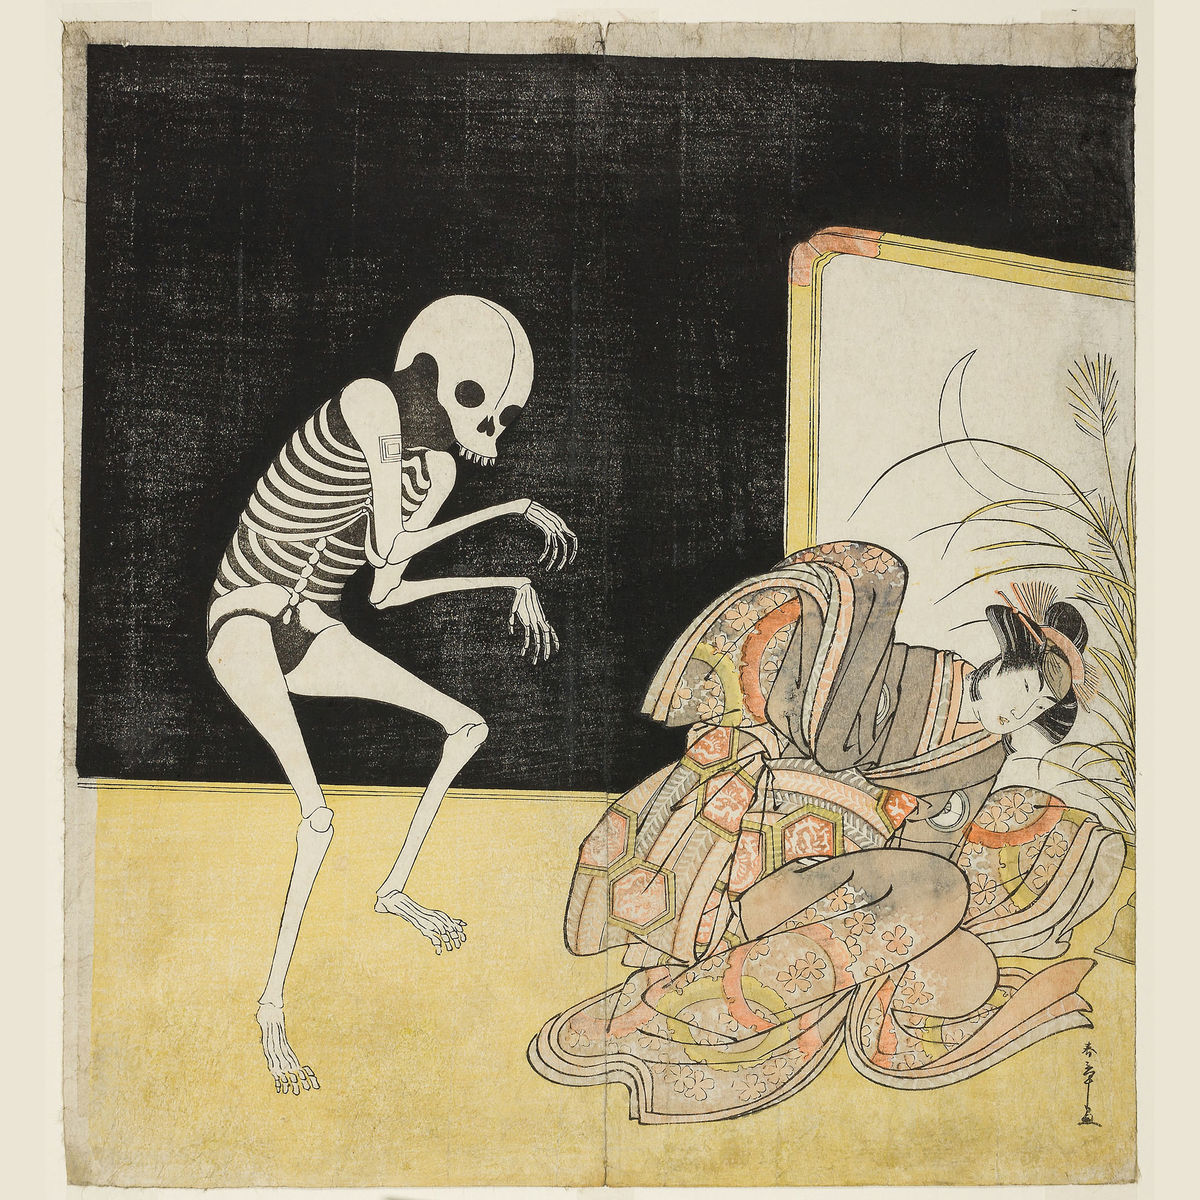 Actor Ichikawa Danjuro V As A Skeleton and Iwai Hanshiro IV as Princess Sakura by Katsukawa Shunsho - 1783